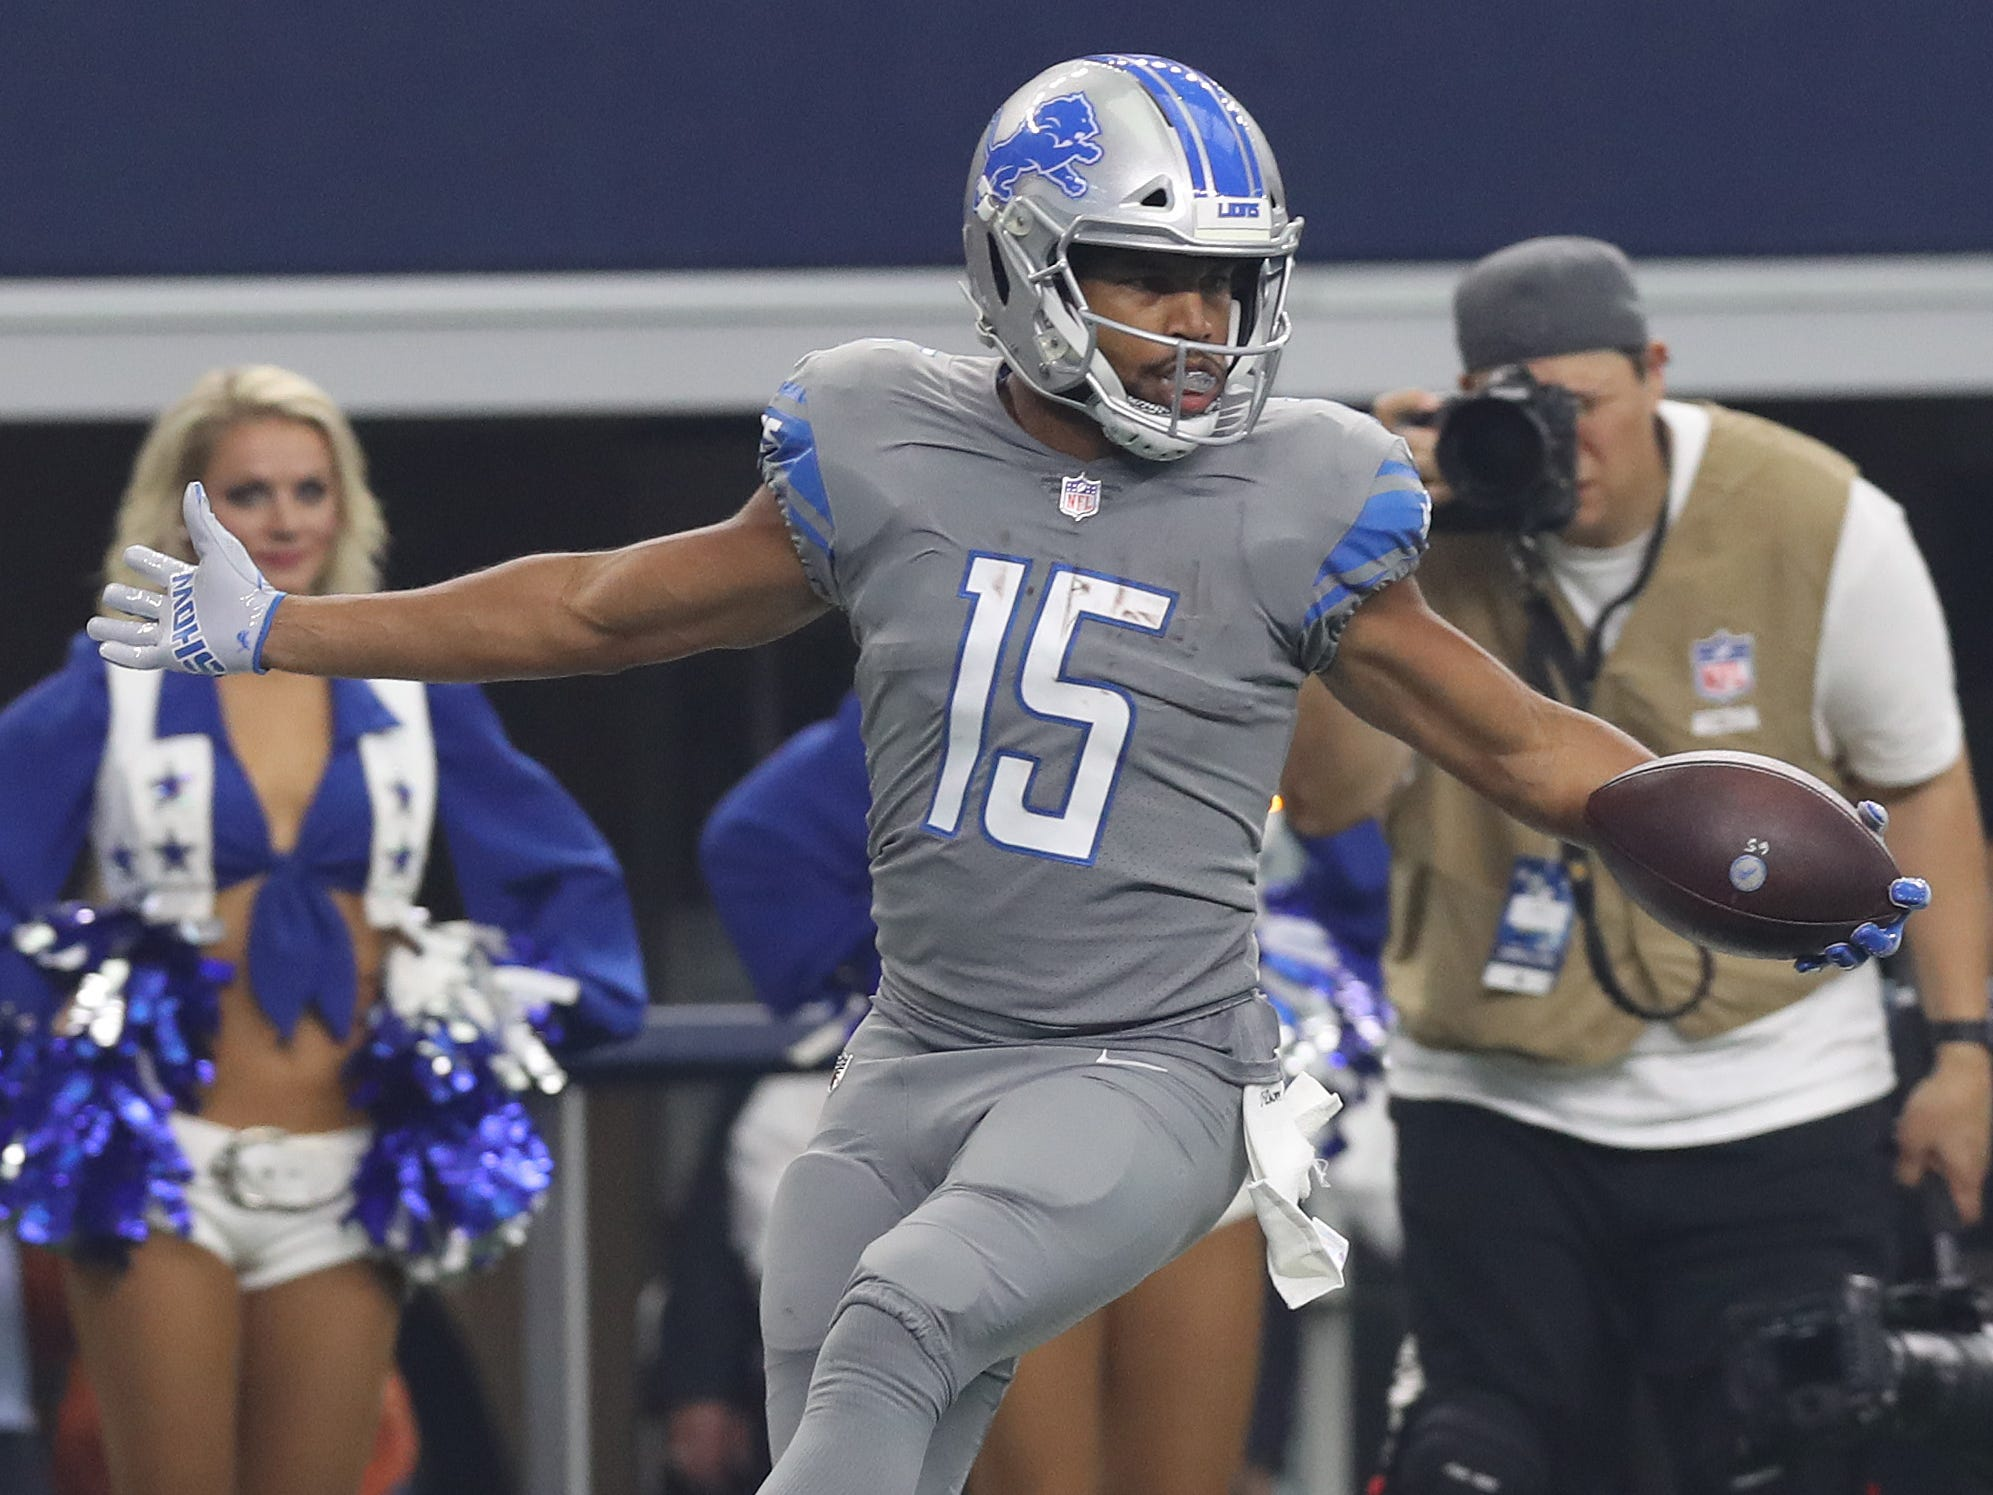 New Eagles wideout Golden Tate is up on Cowboys rivalry